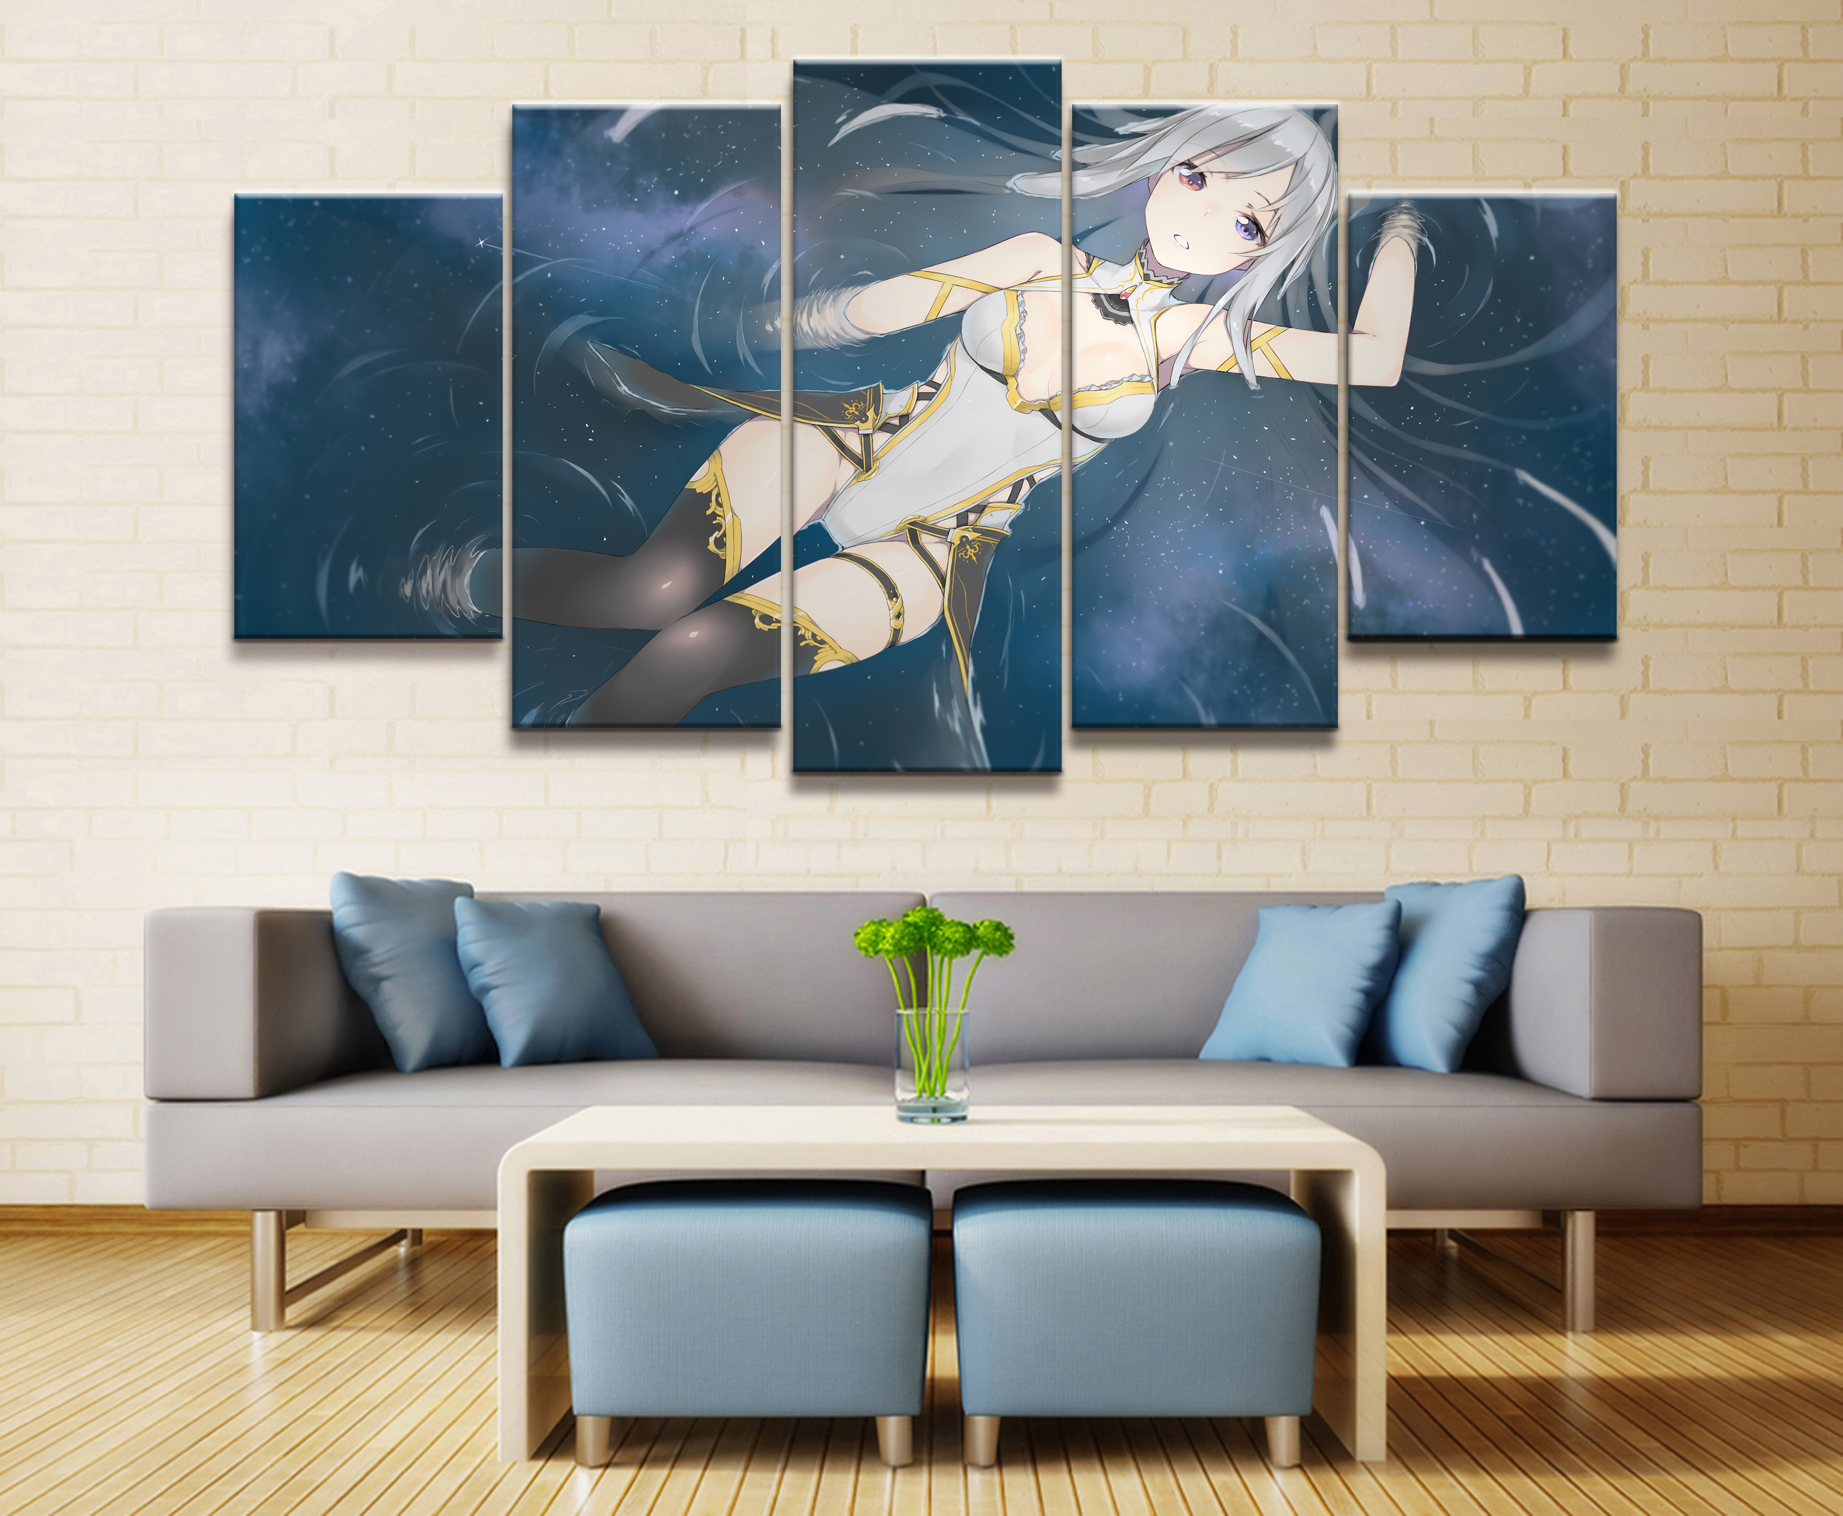 5 Panel Water Maiden Animation Canvas Printed Painting For Living Room Wall Decor HD Picture Artworks Poster in Painting Calligraphy from Home Garden